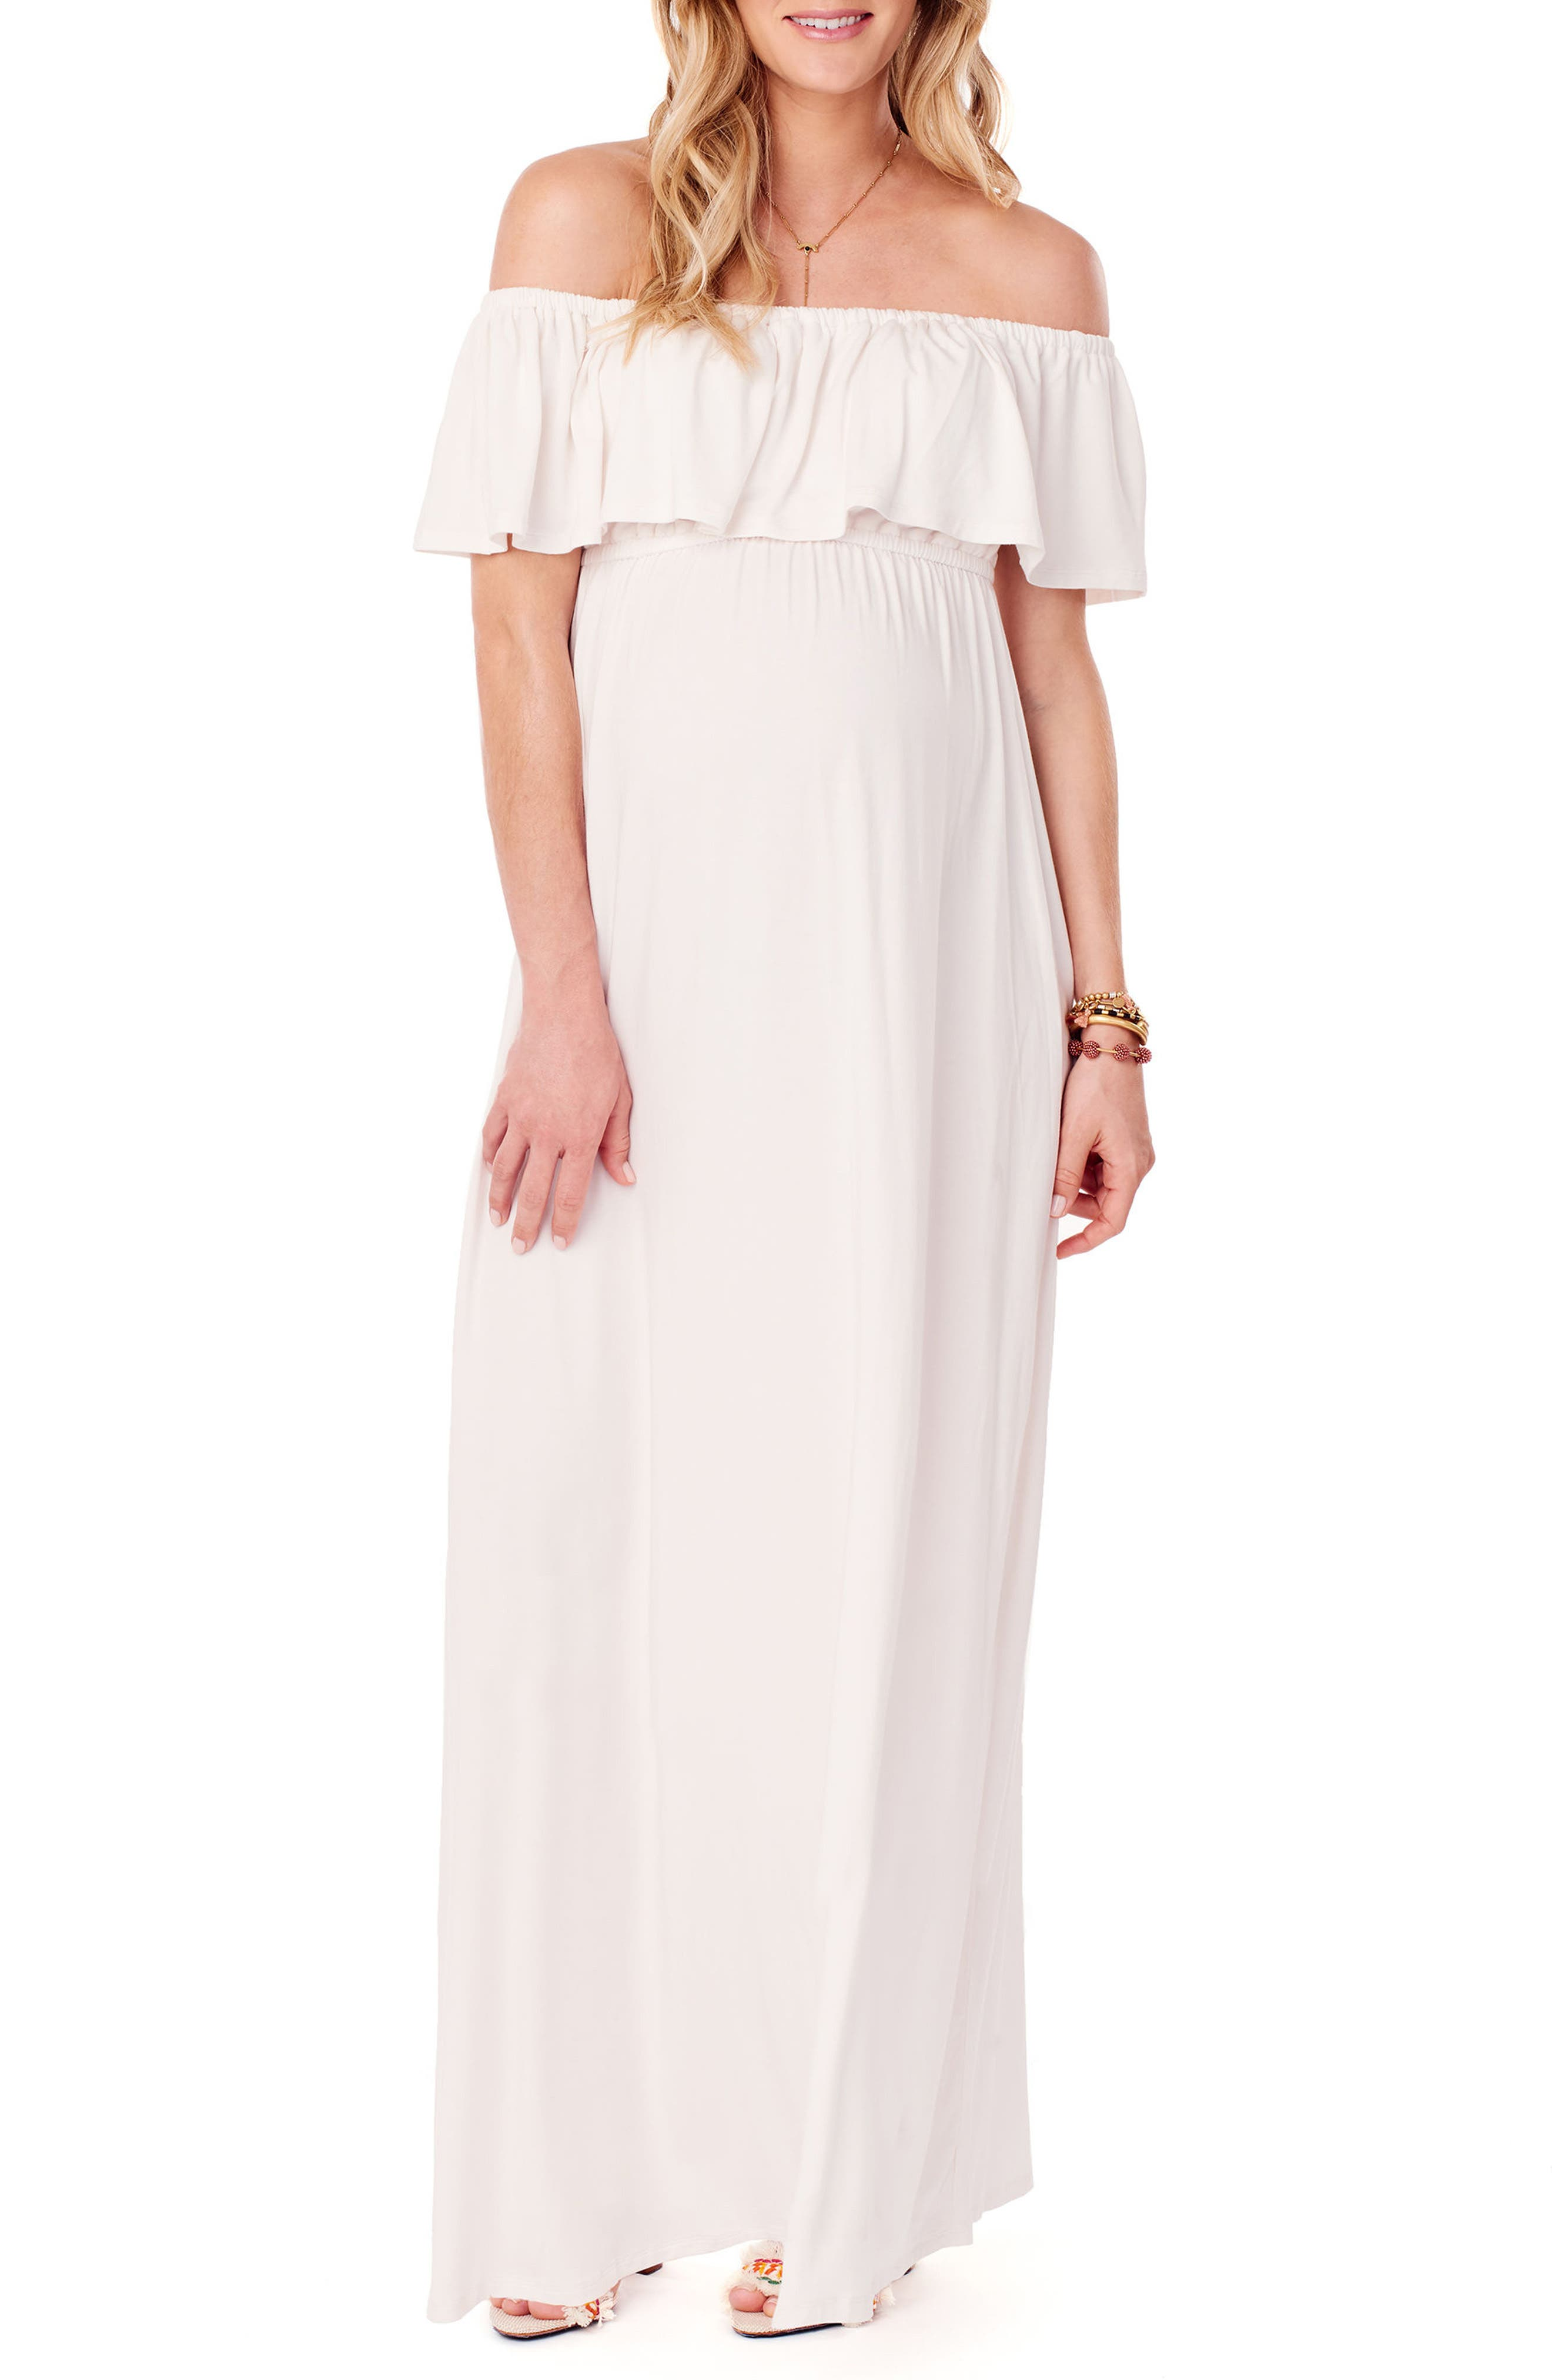 White Maternity Maxi Dresses for Baby Showers